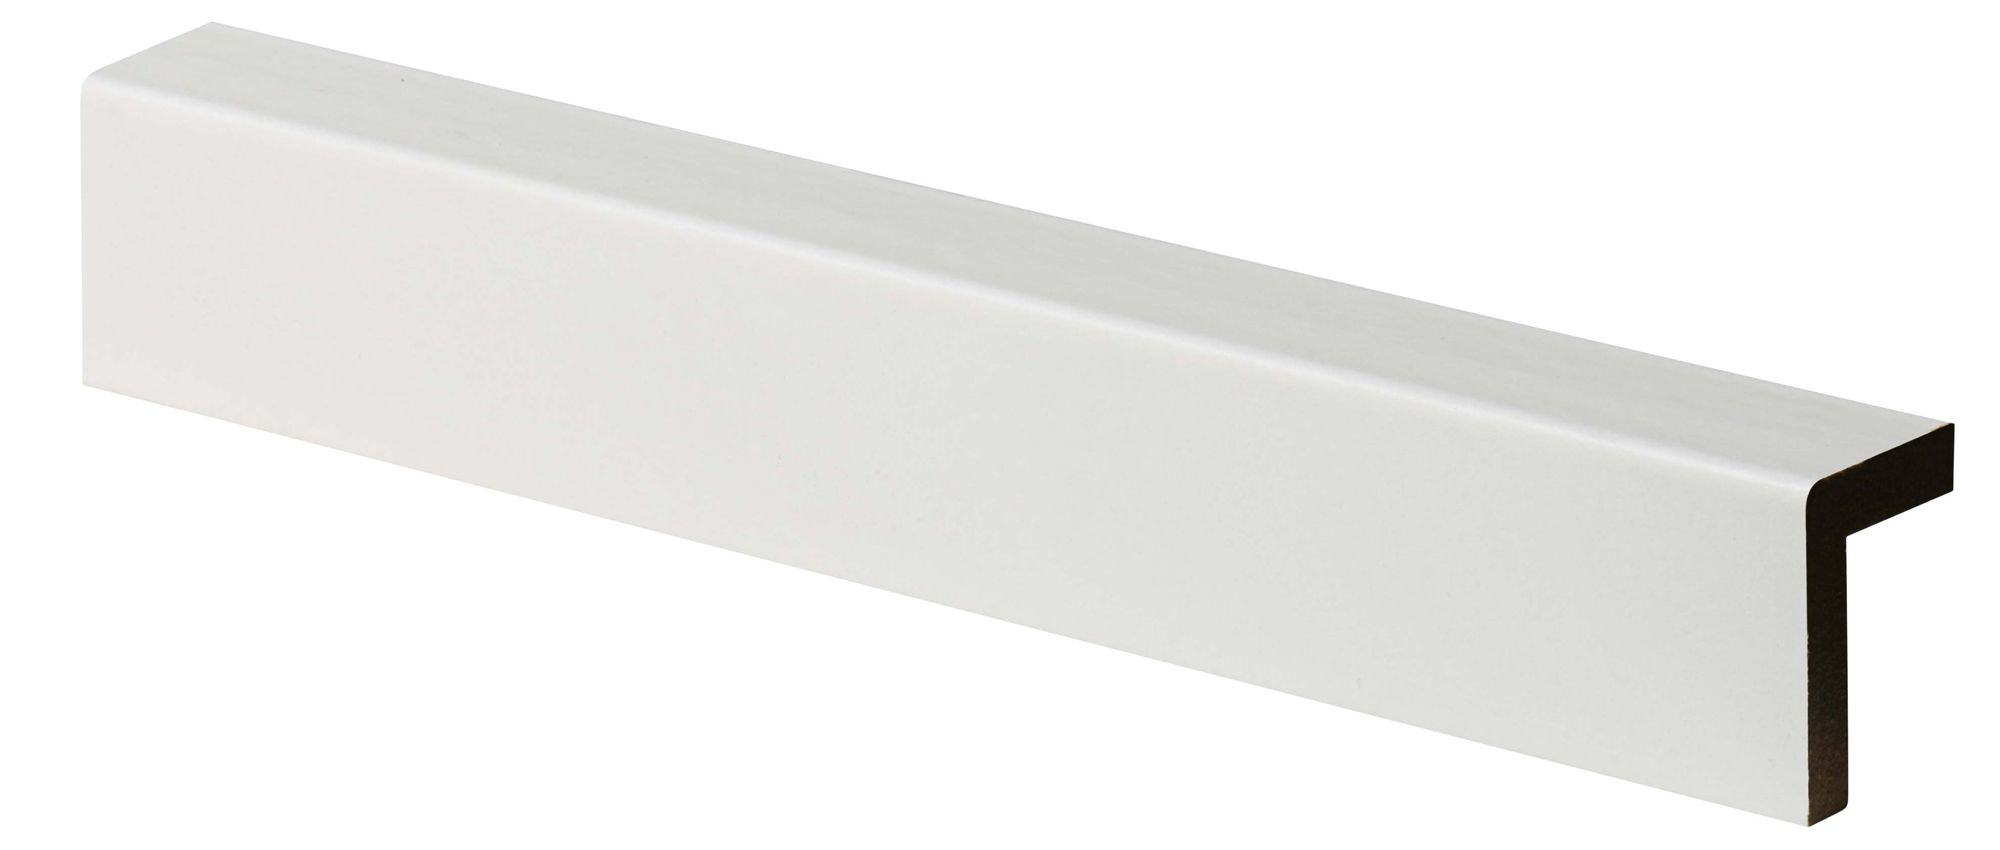 Timber Cladding Foil Wrapped Corner Moulding (T)18mm (W)18mm (L)2400mm |  Departments | DIY at B&Q